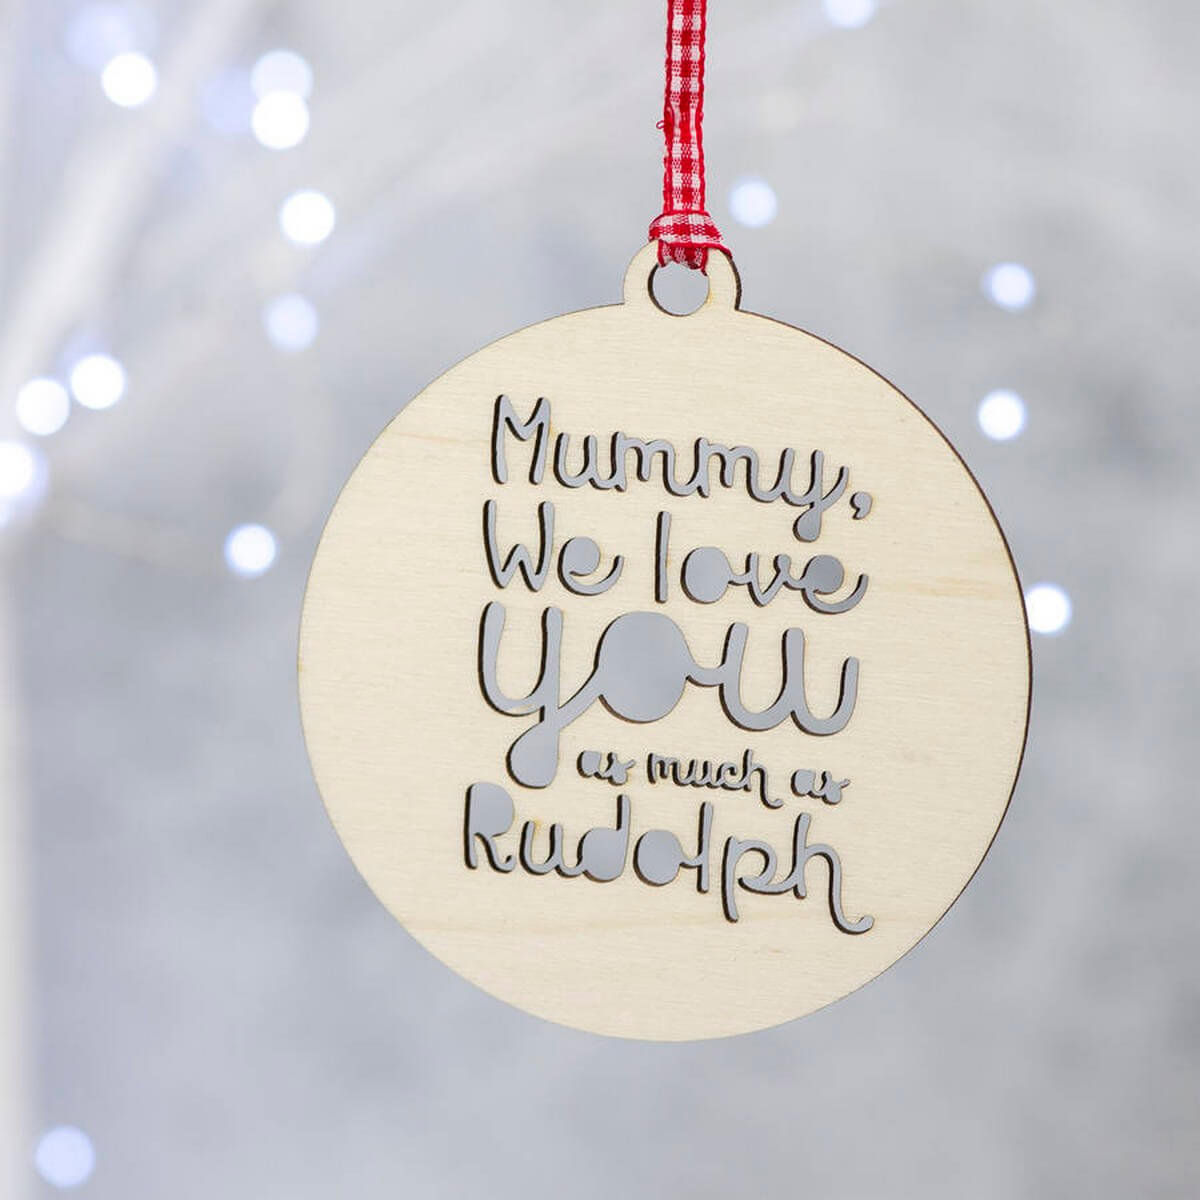 From traditional baubles to whimsical trinkets, We pick the best Christmas ornaments to hang on your tree this festive season.